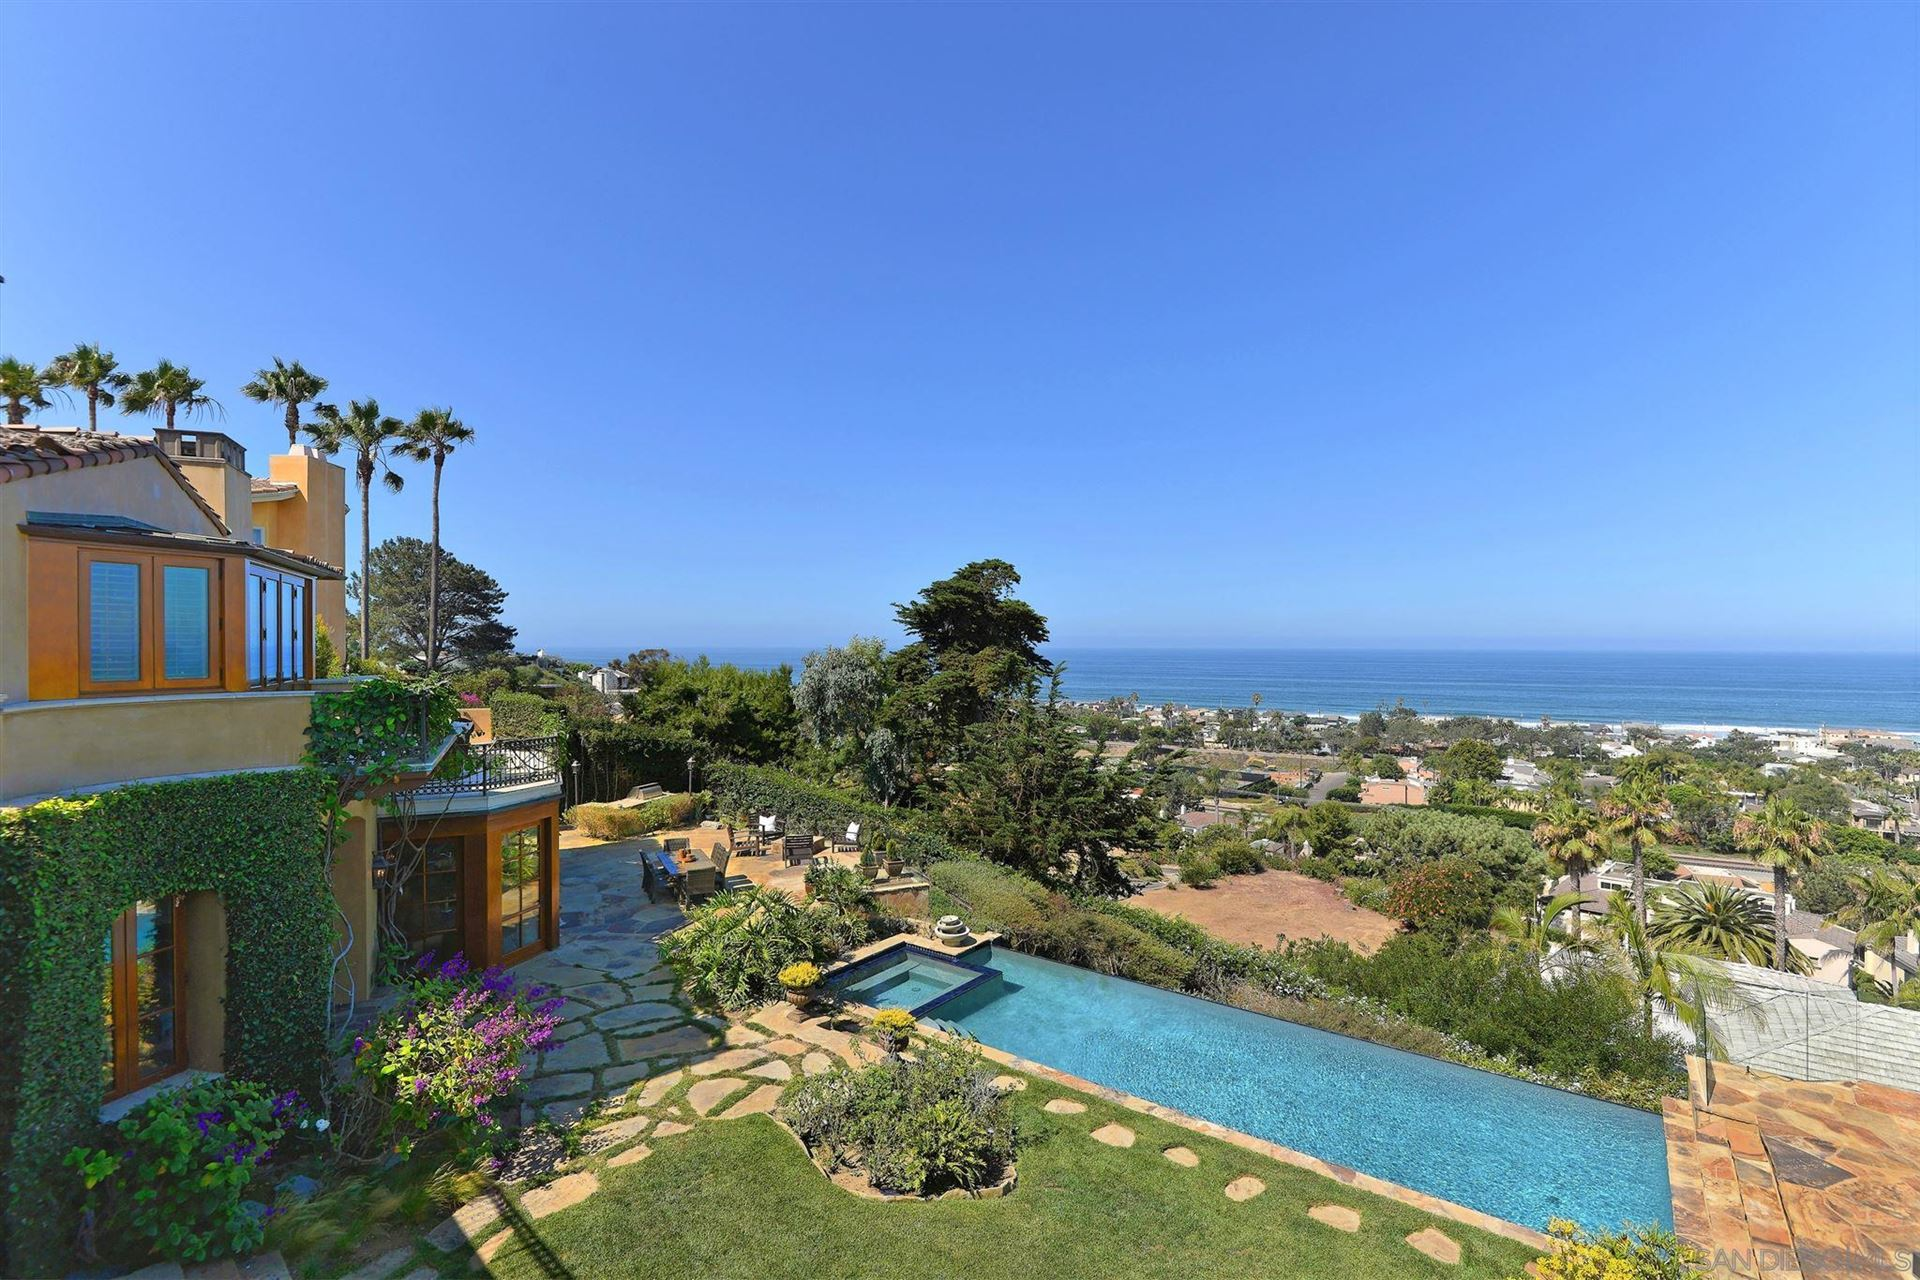 Photo of 2116 Balboa Avenue, Del Mar, CA 92014 (MLS # 210007445)